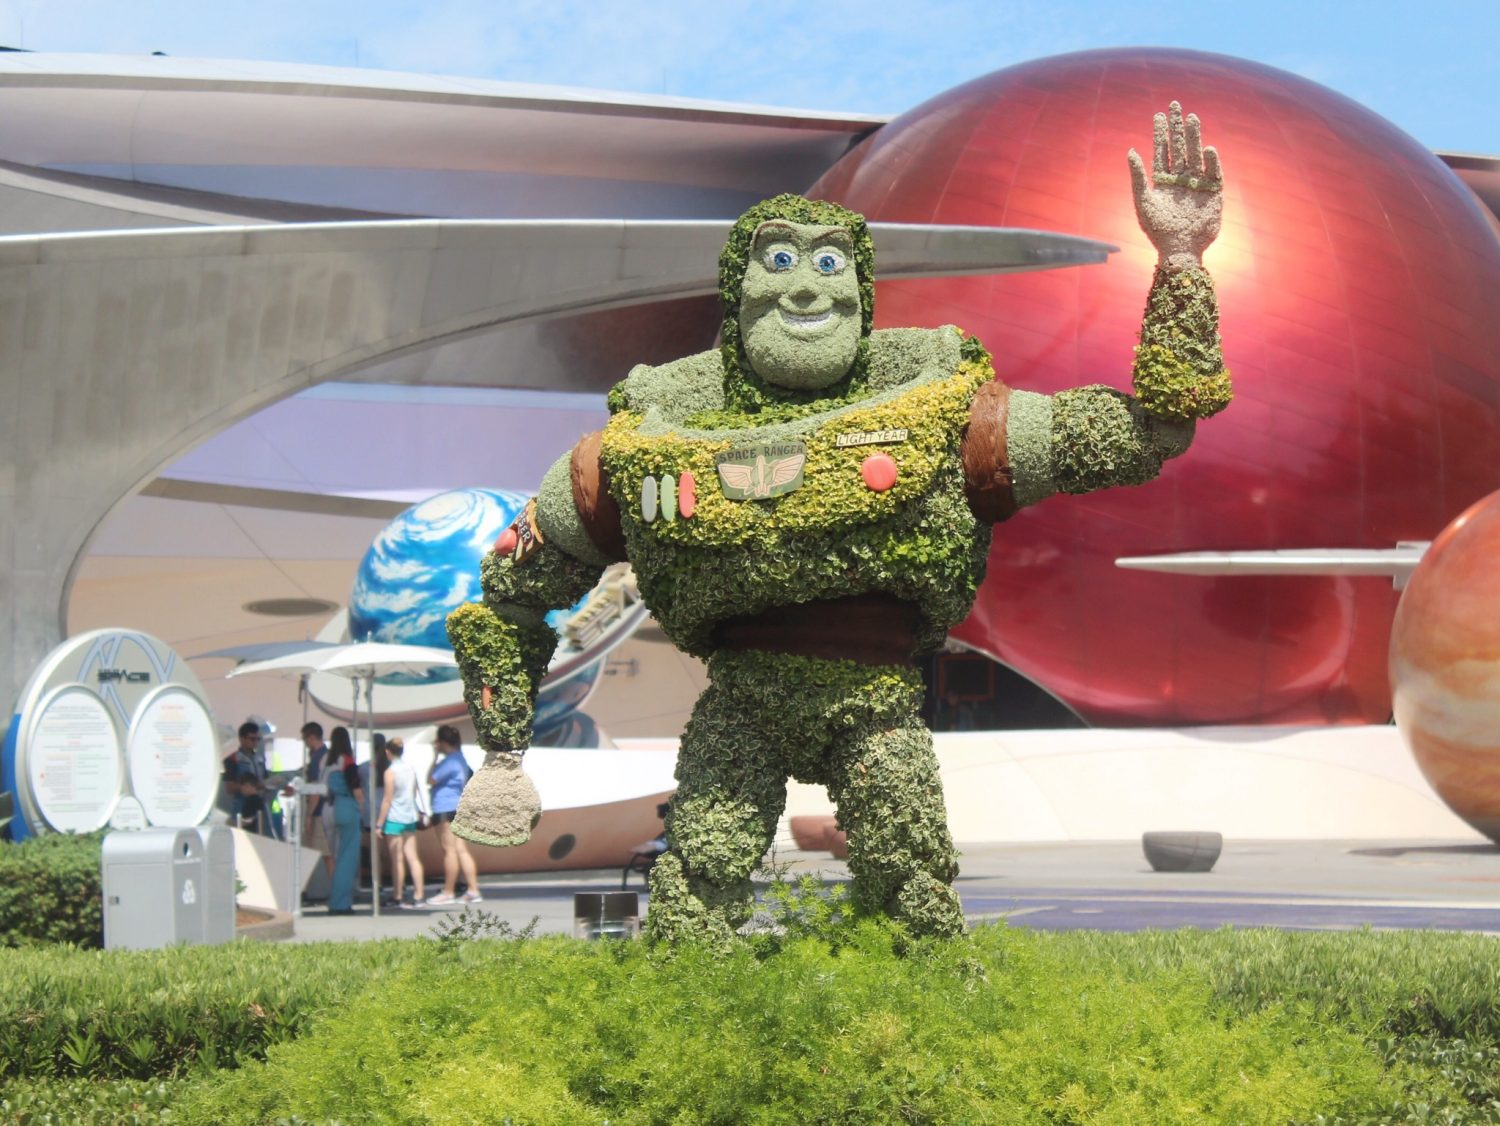 Epcot International Flower and Garden Festival Buzz Lightyear